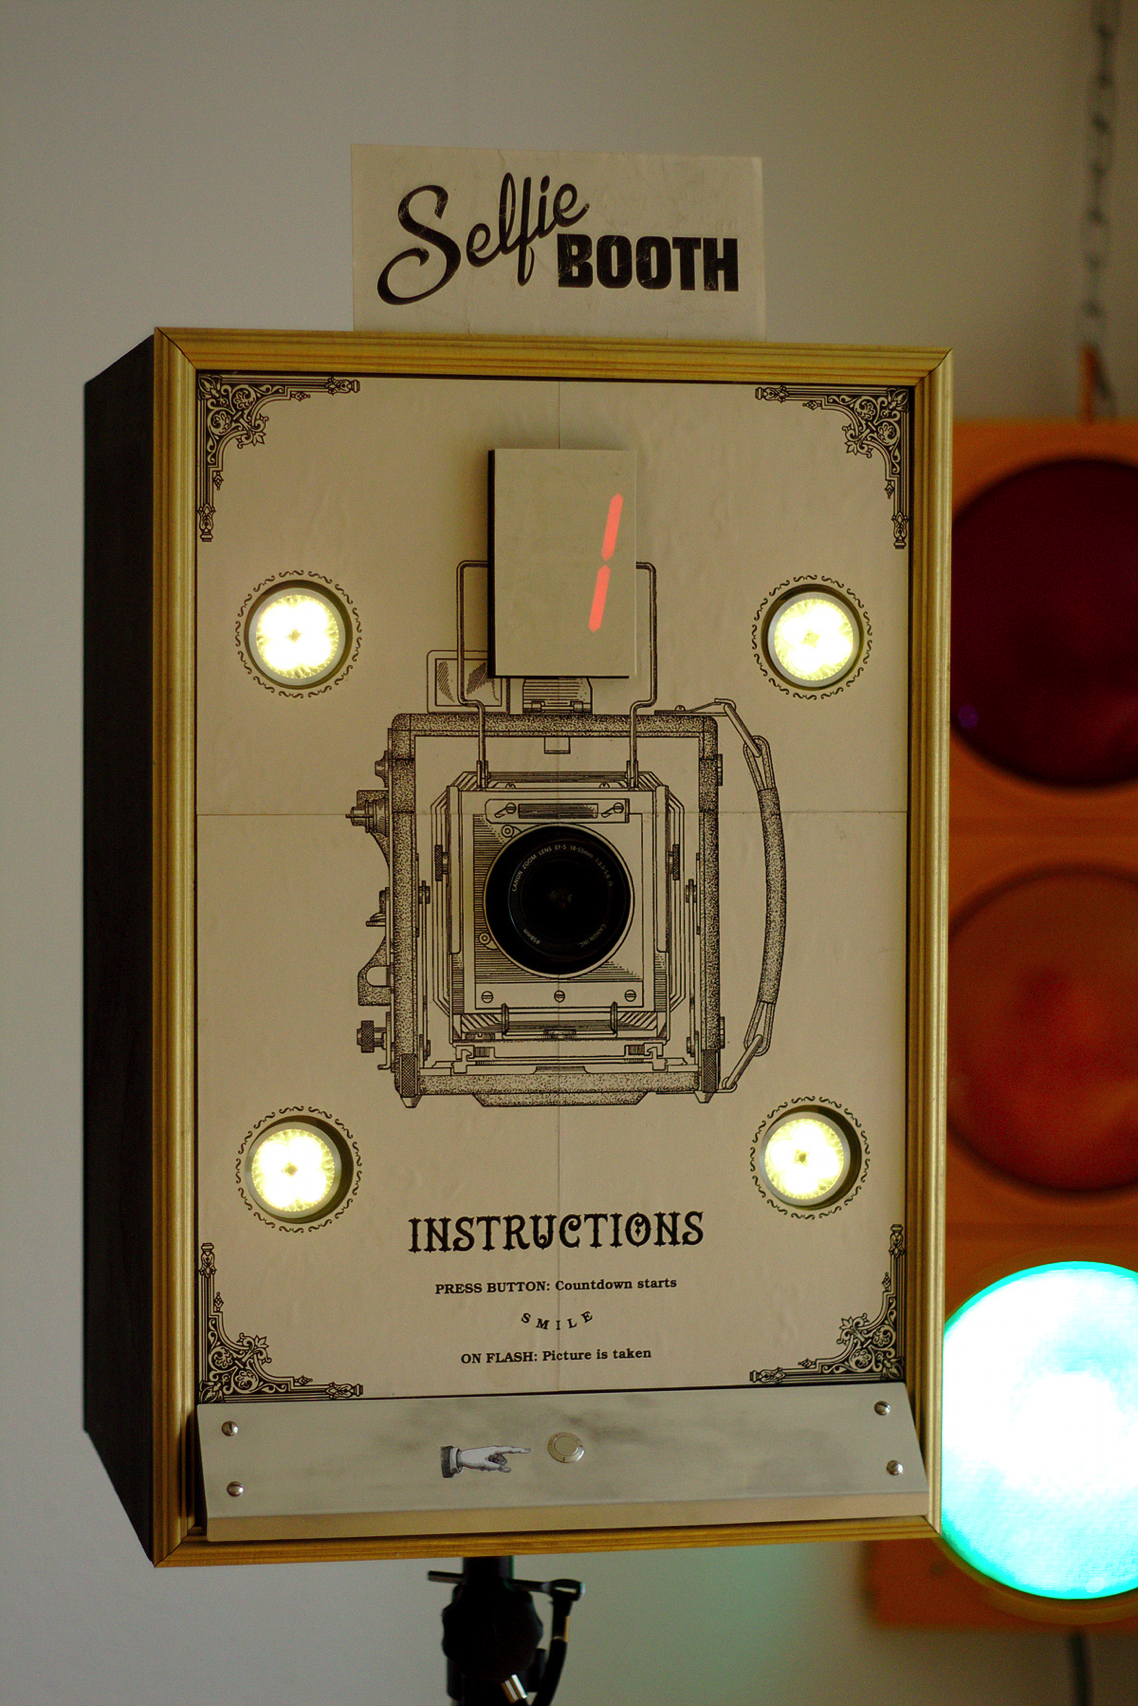 Build a vintage photo booth with arduino and raspberrypi build a vintage photo booth with arduino and raspberrypi raspberrypi celebratephotography solutioingenieria Choice Image